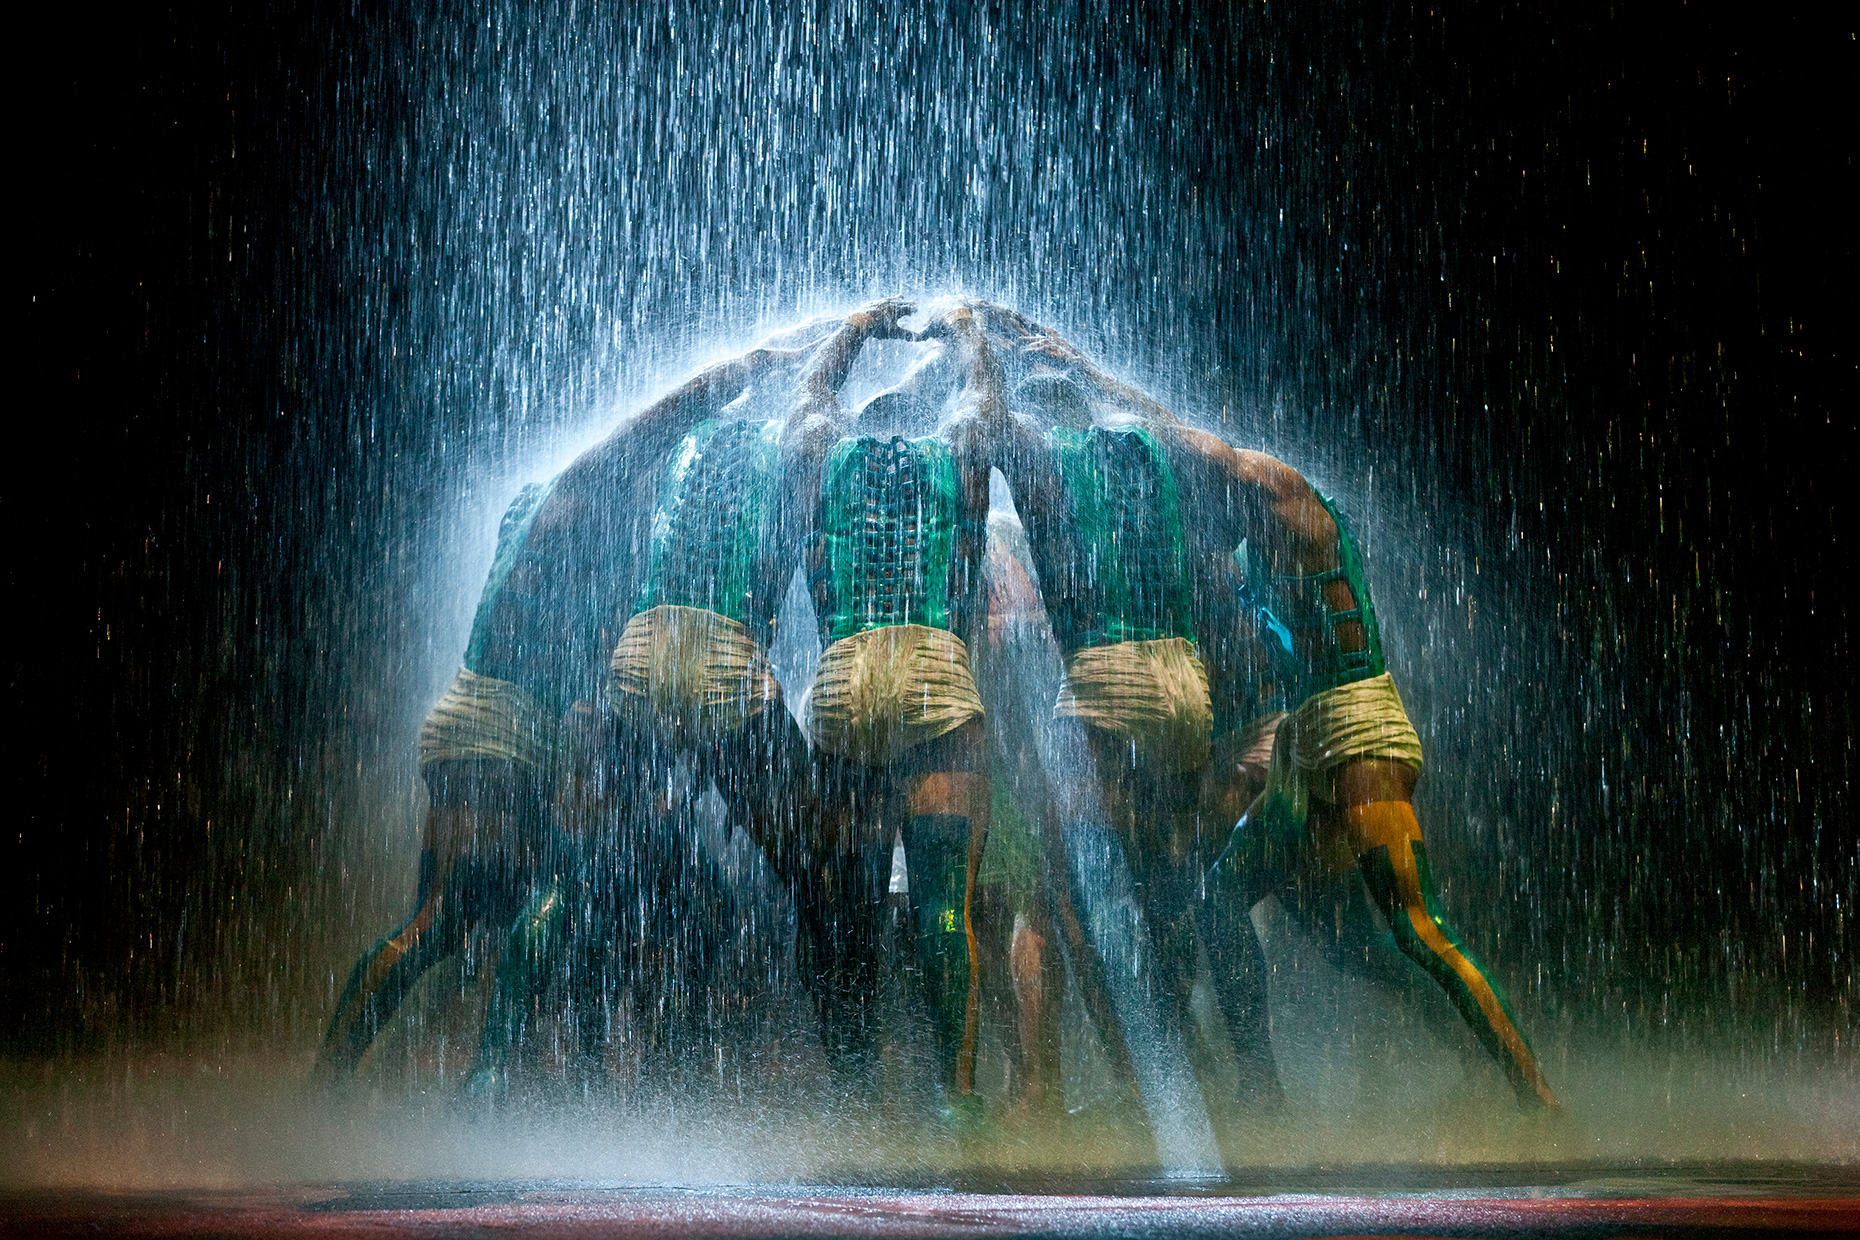 Acrobatic performers forming a roof. Cirque du Soleil, Dragone, The House of Dancing water